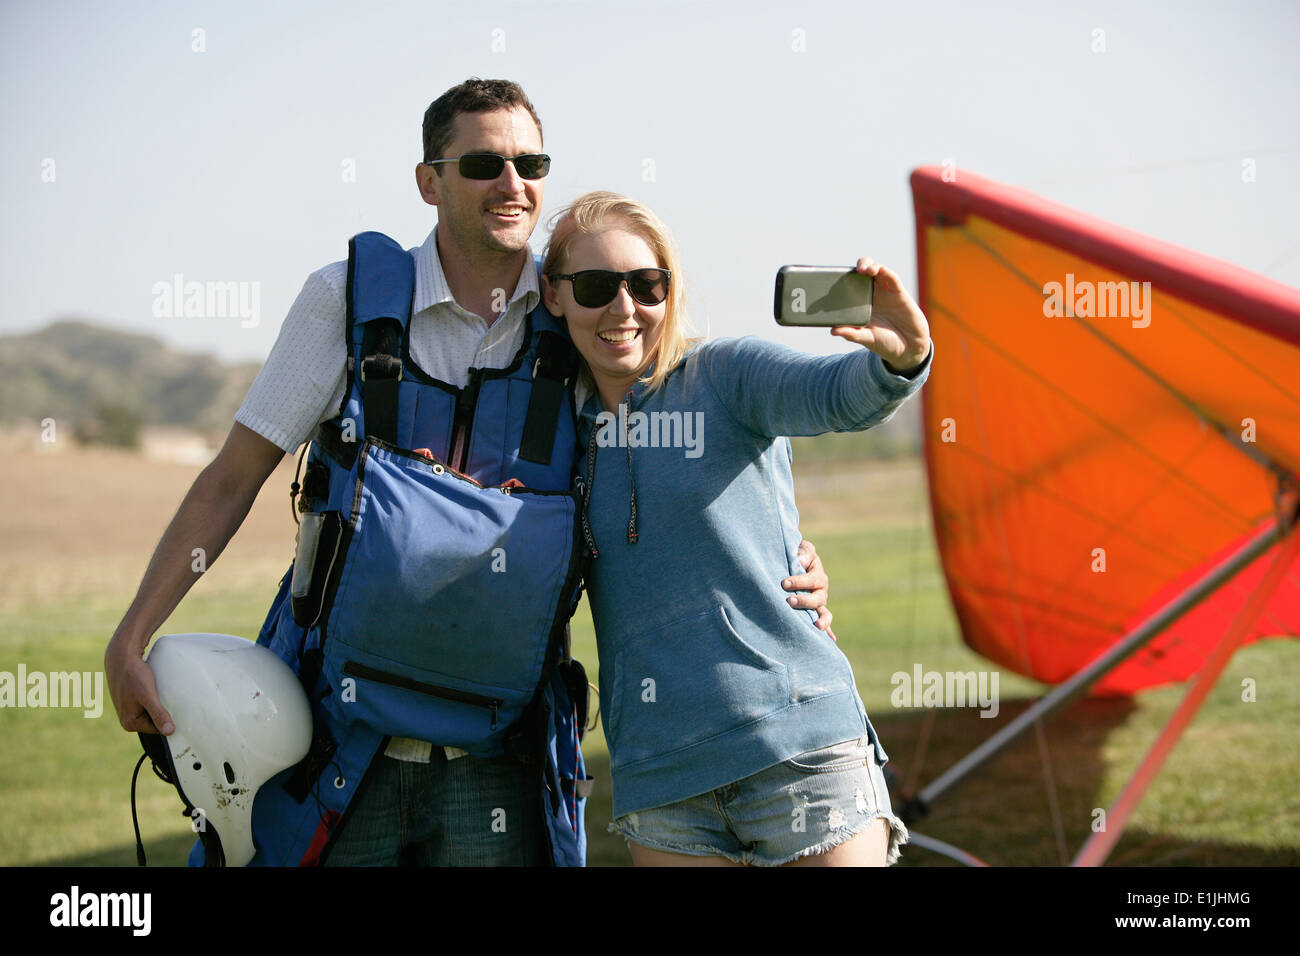 Couple taking selfie, hang glider in background - Stock Image